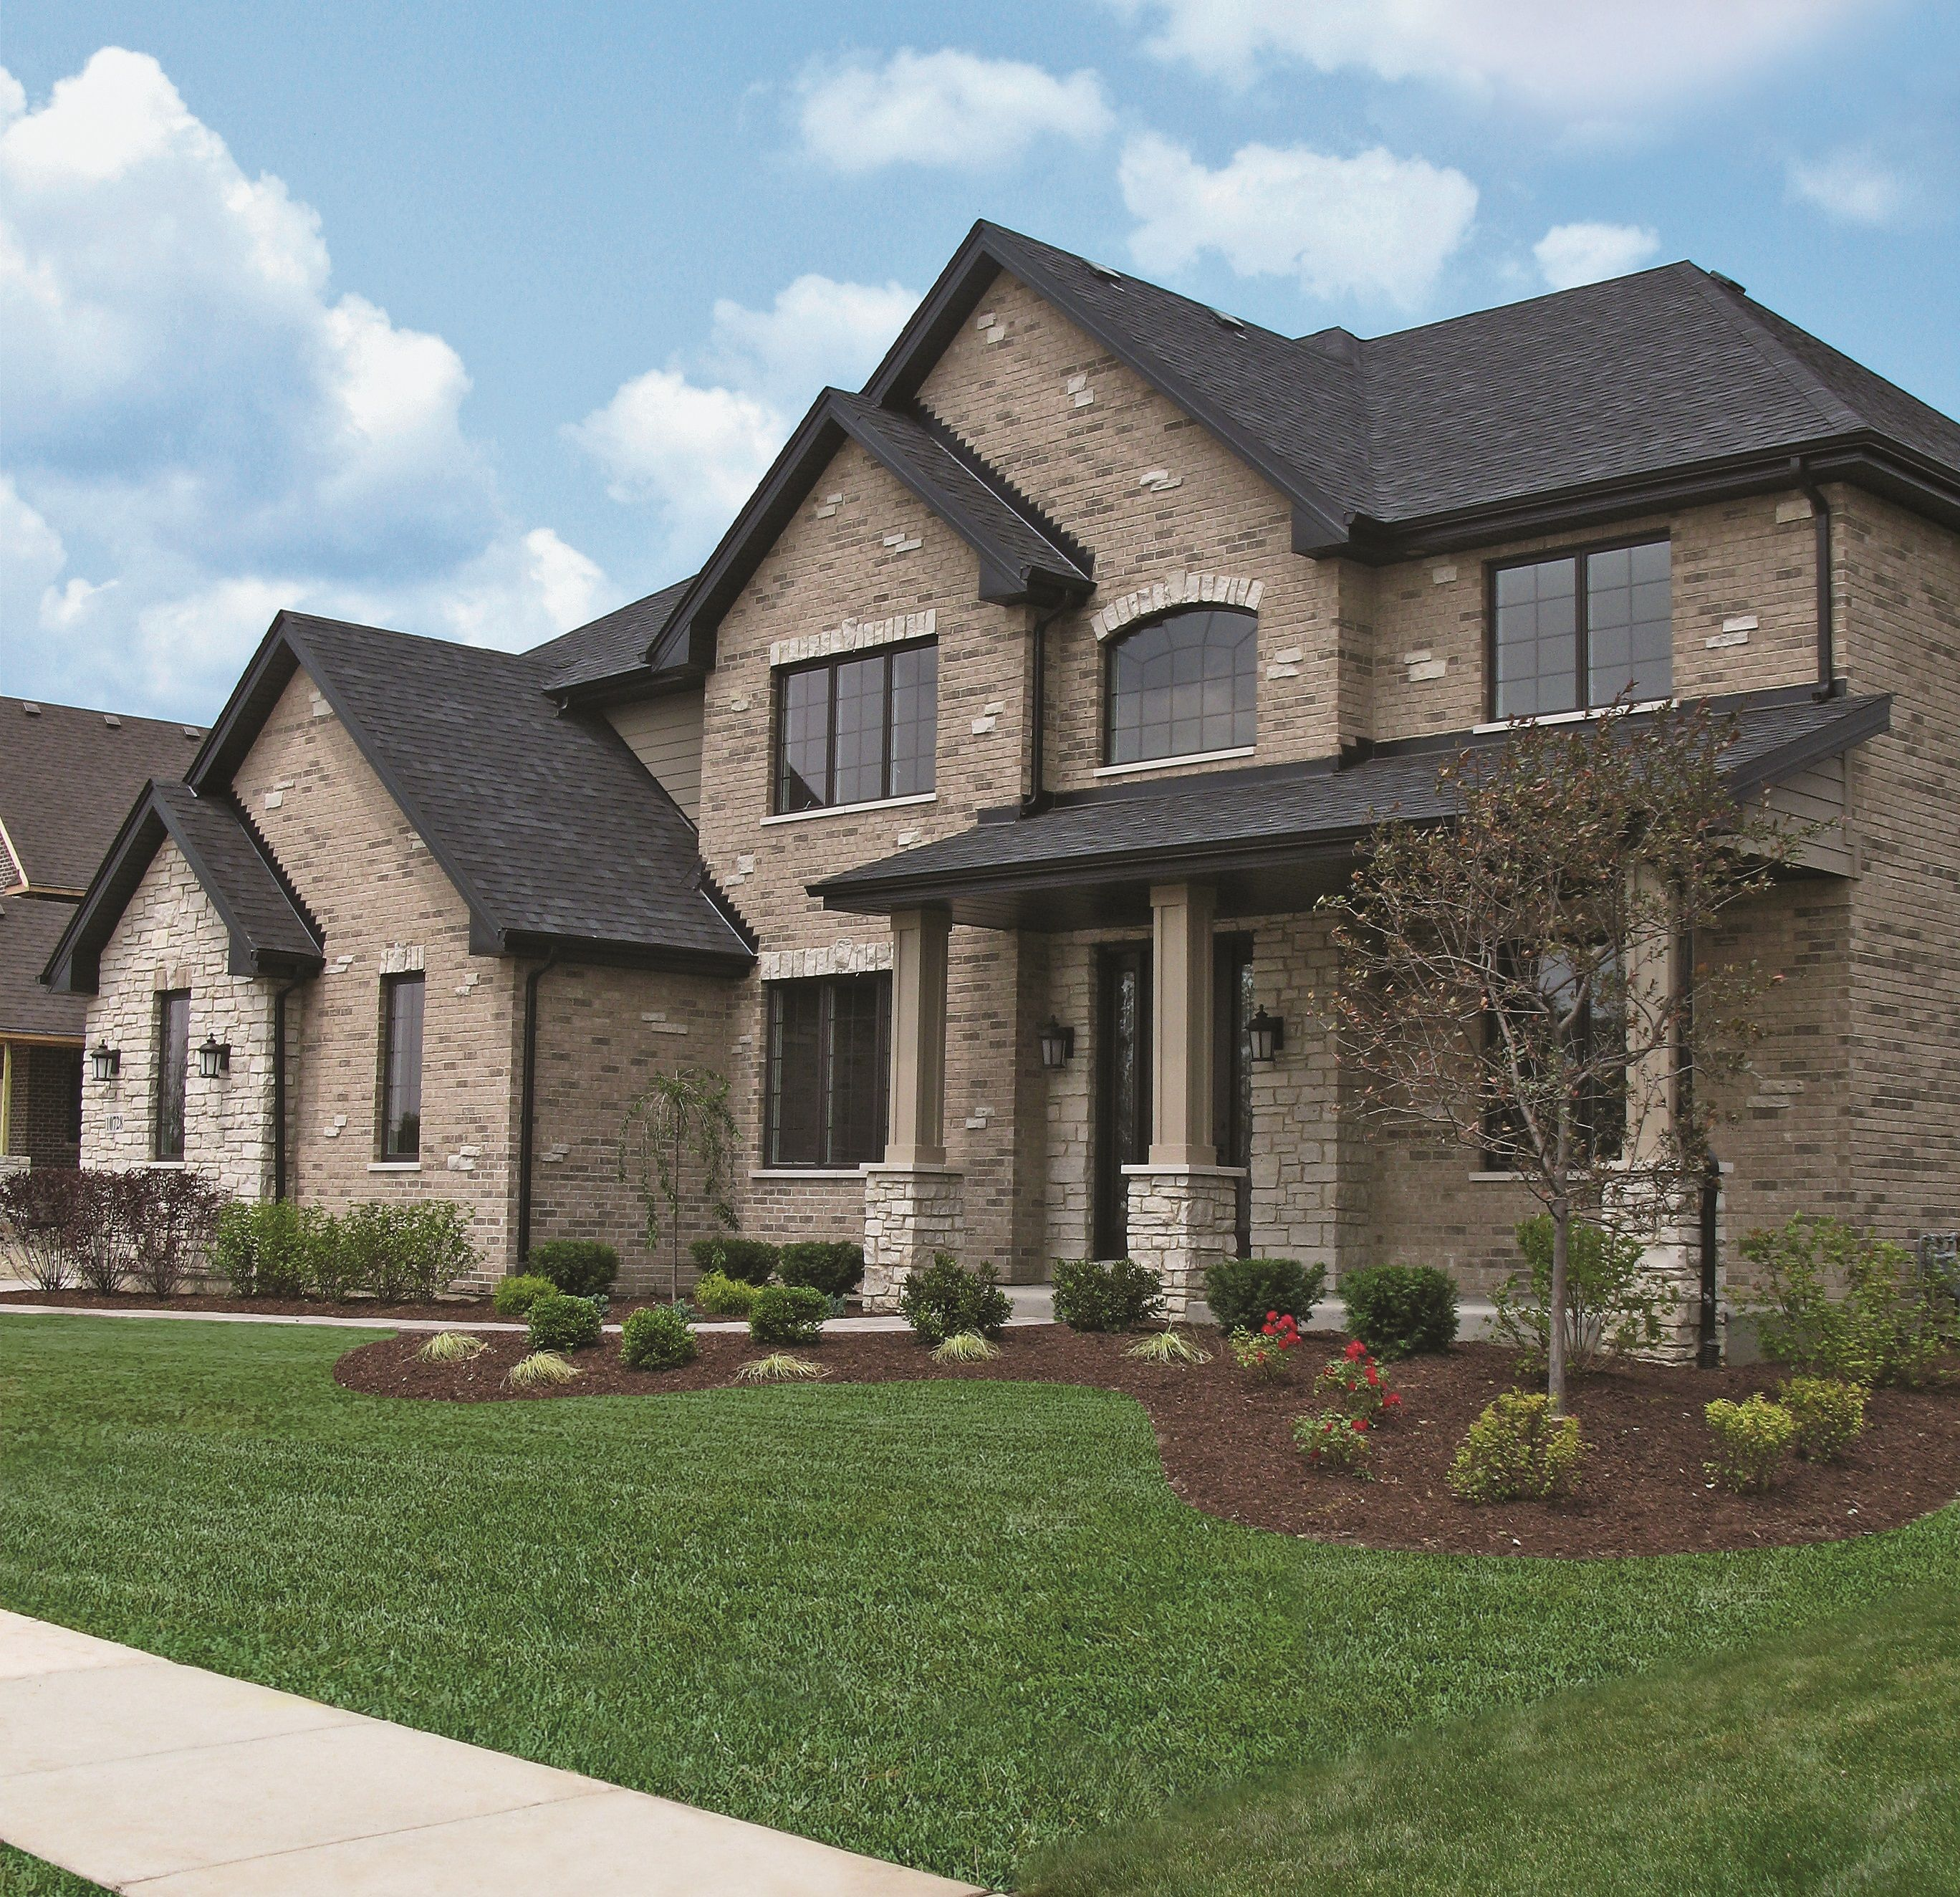 Equestrian Meadows By Castletown Homes In Chicago Illinois